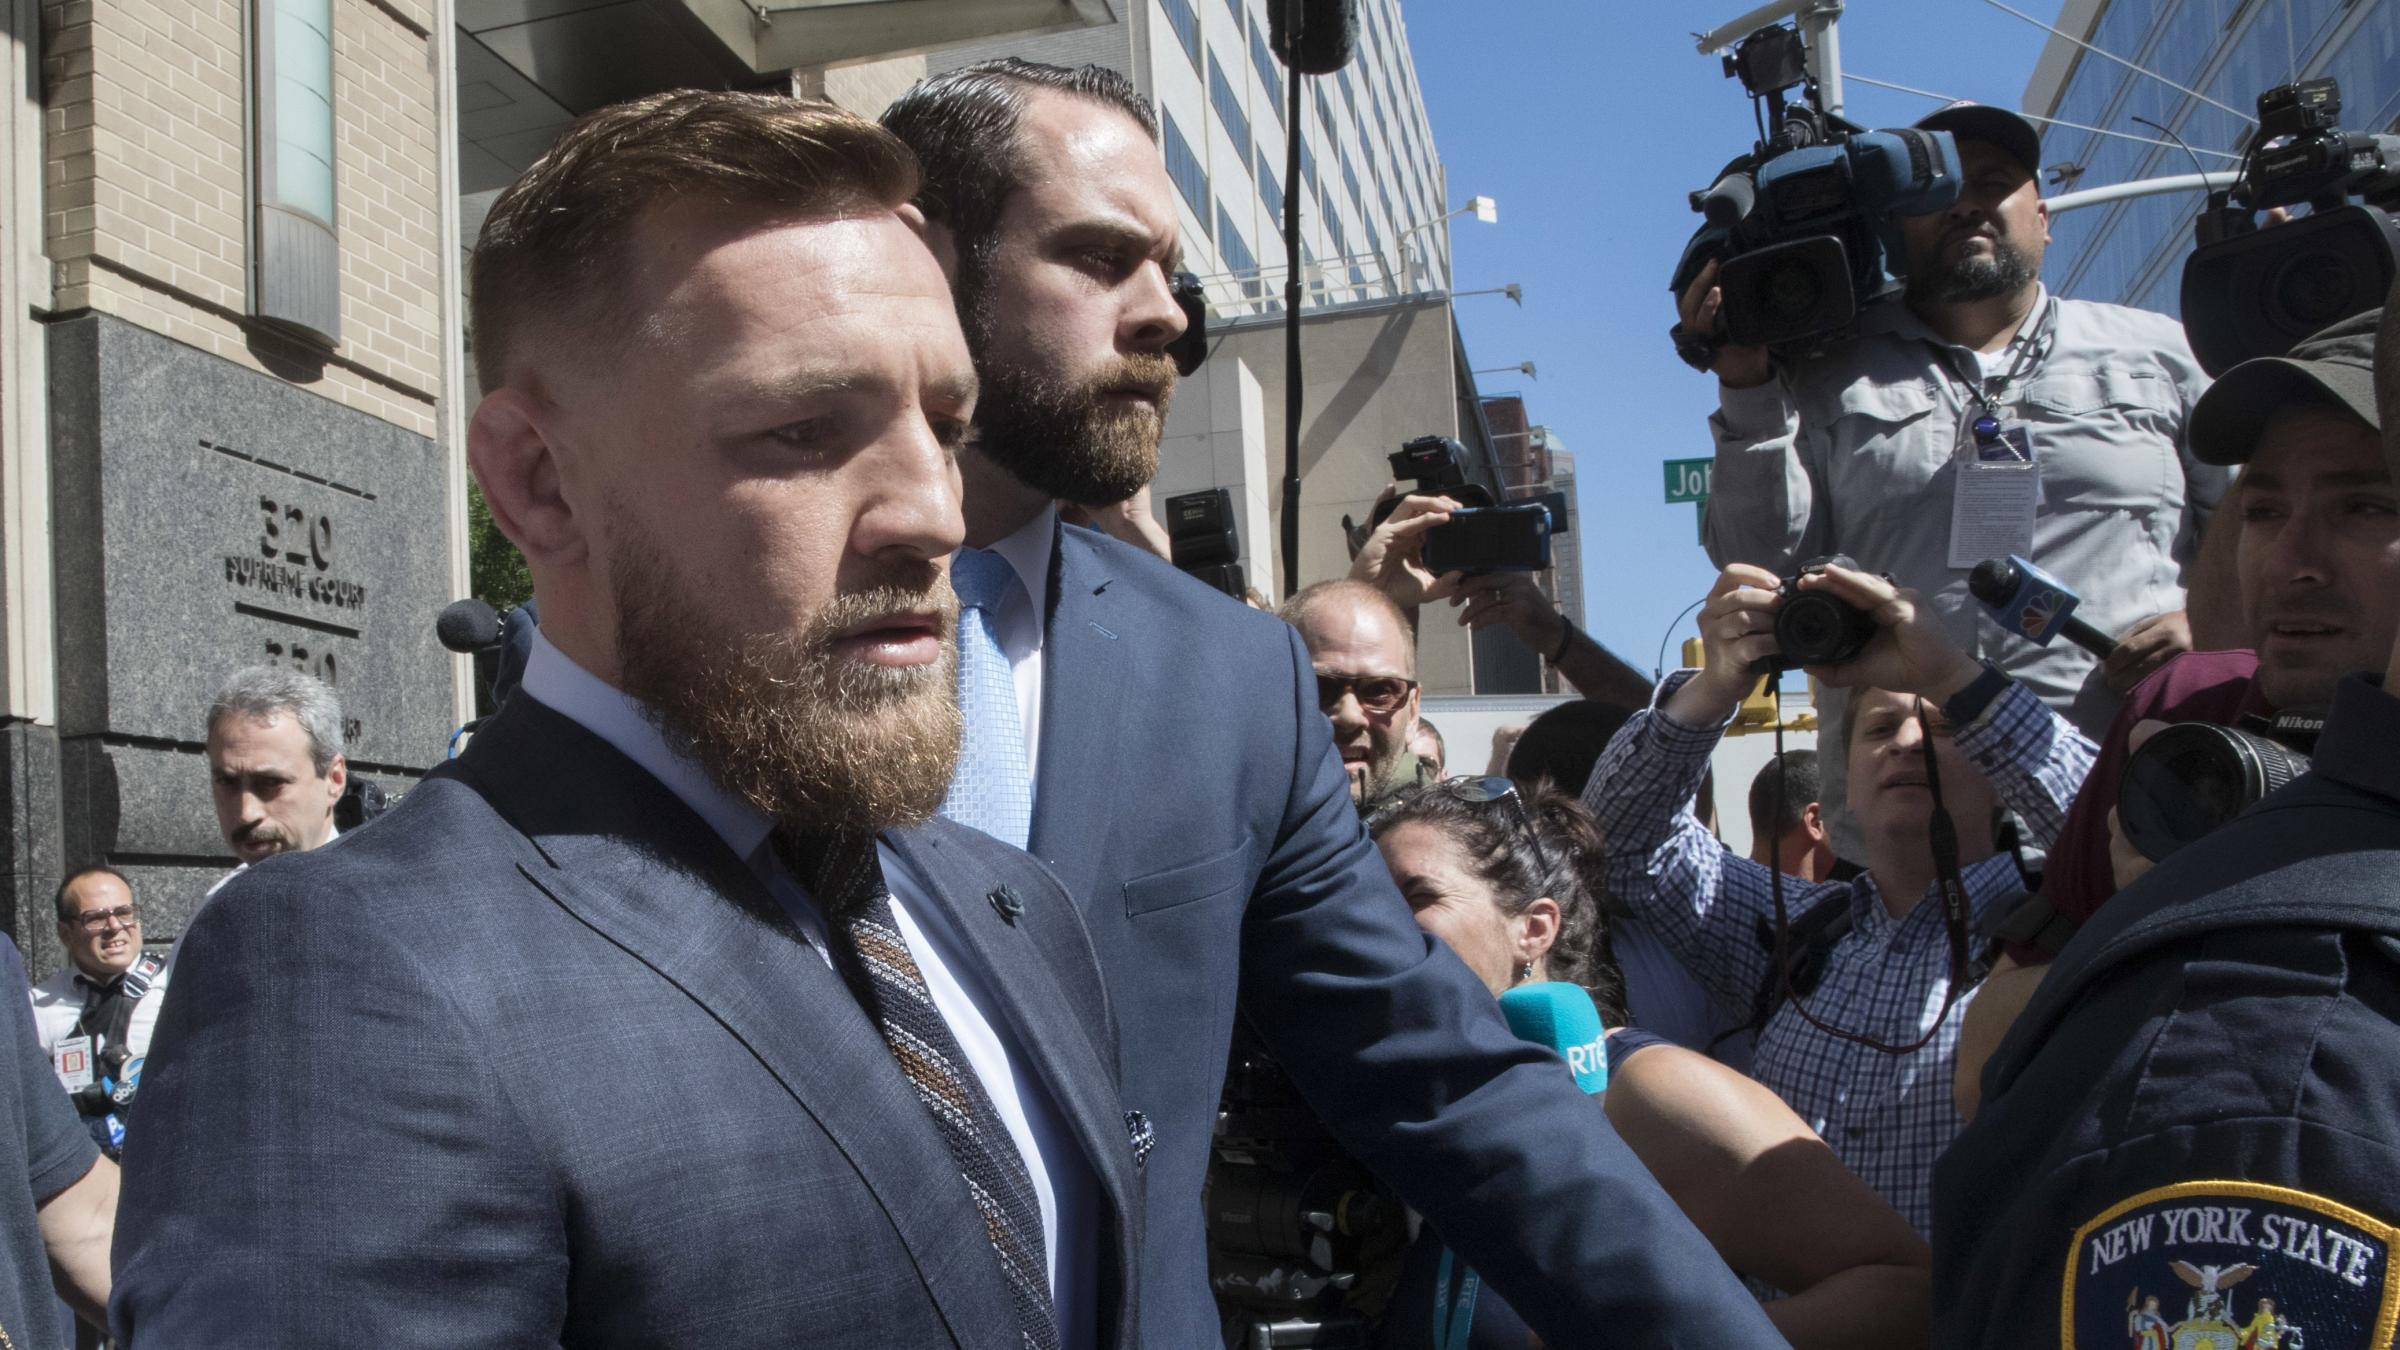 'I regret my actions': Irish UFC star Conor McGregor tells of regret over New York bus attack